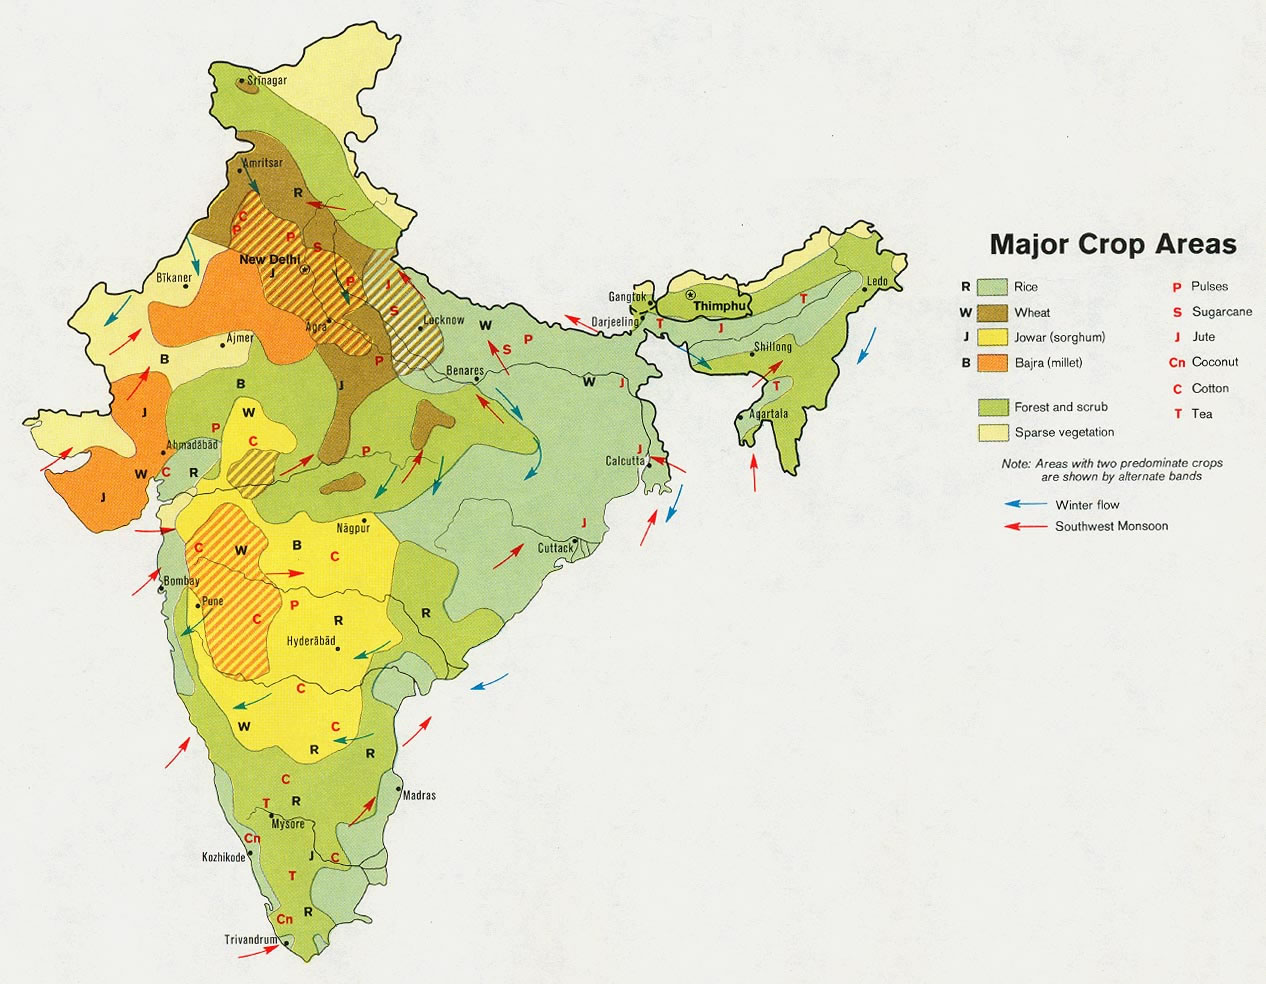 crop-areas-map-of-india-1973